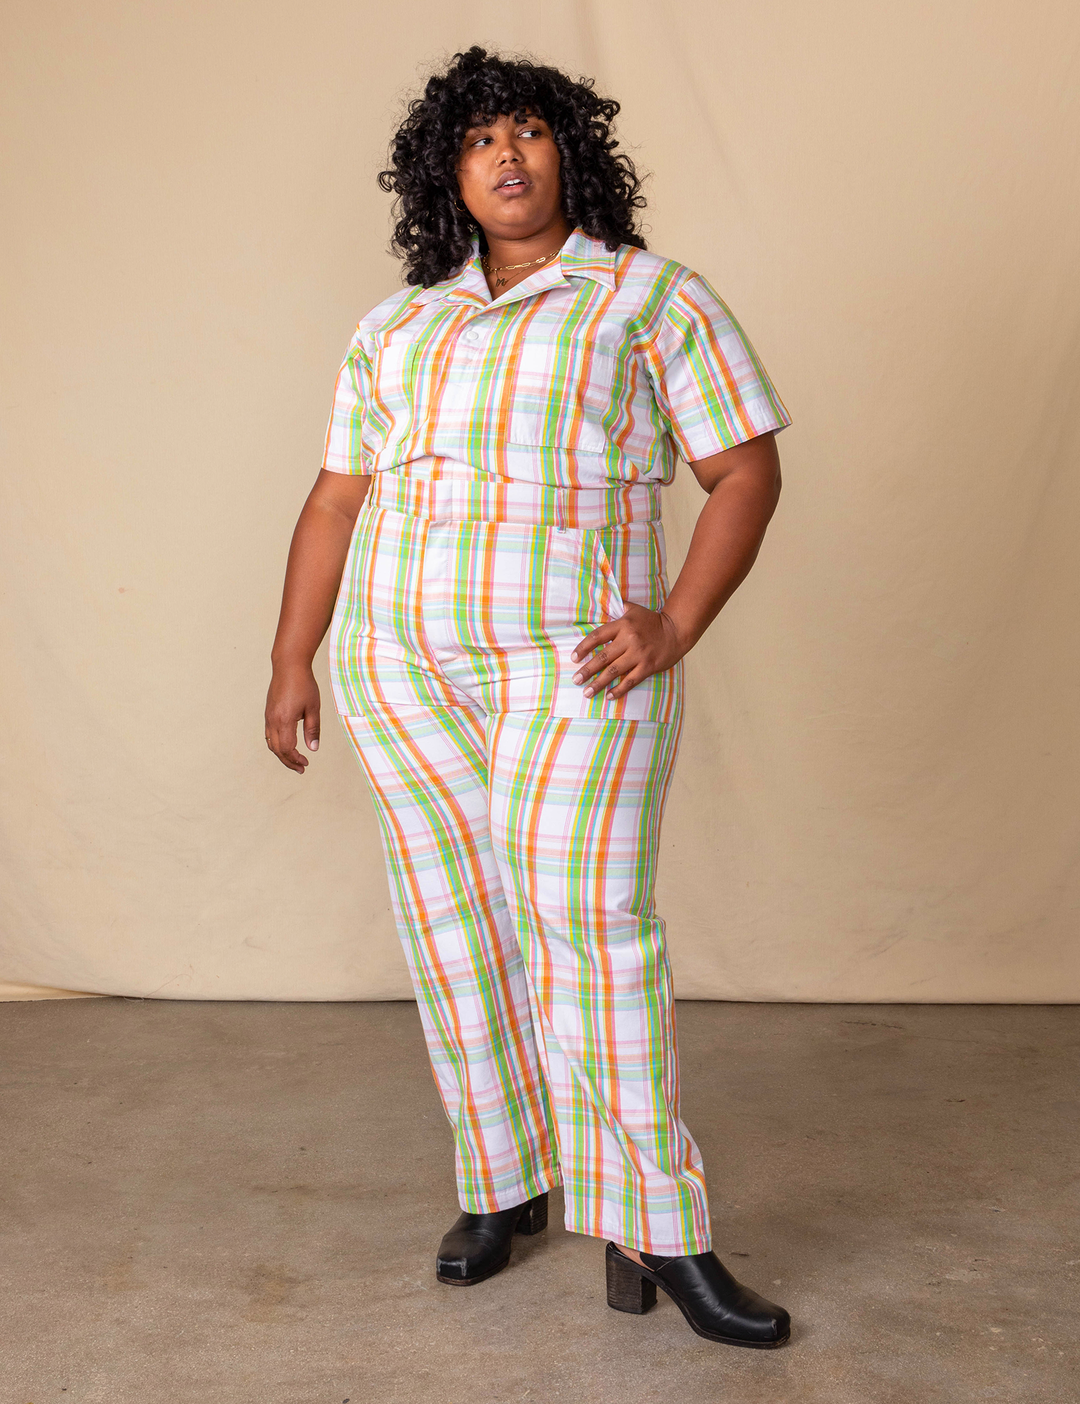 a model wearing the rainbow plaid jumpsuit in a size 3XL